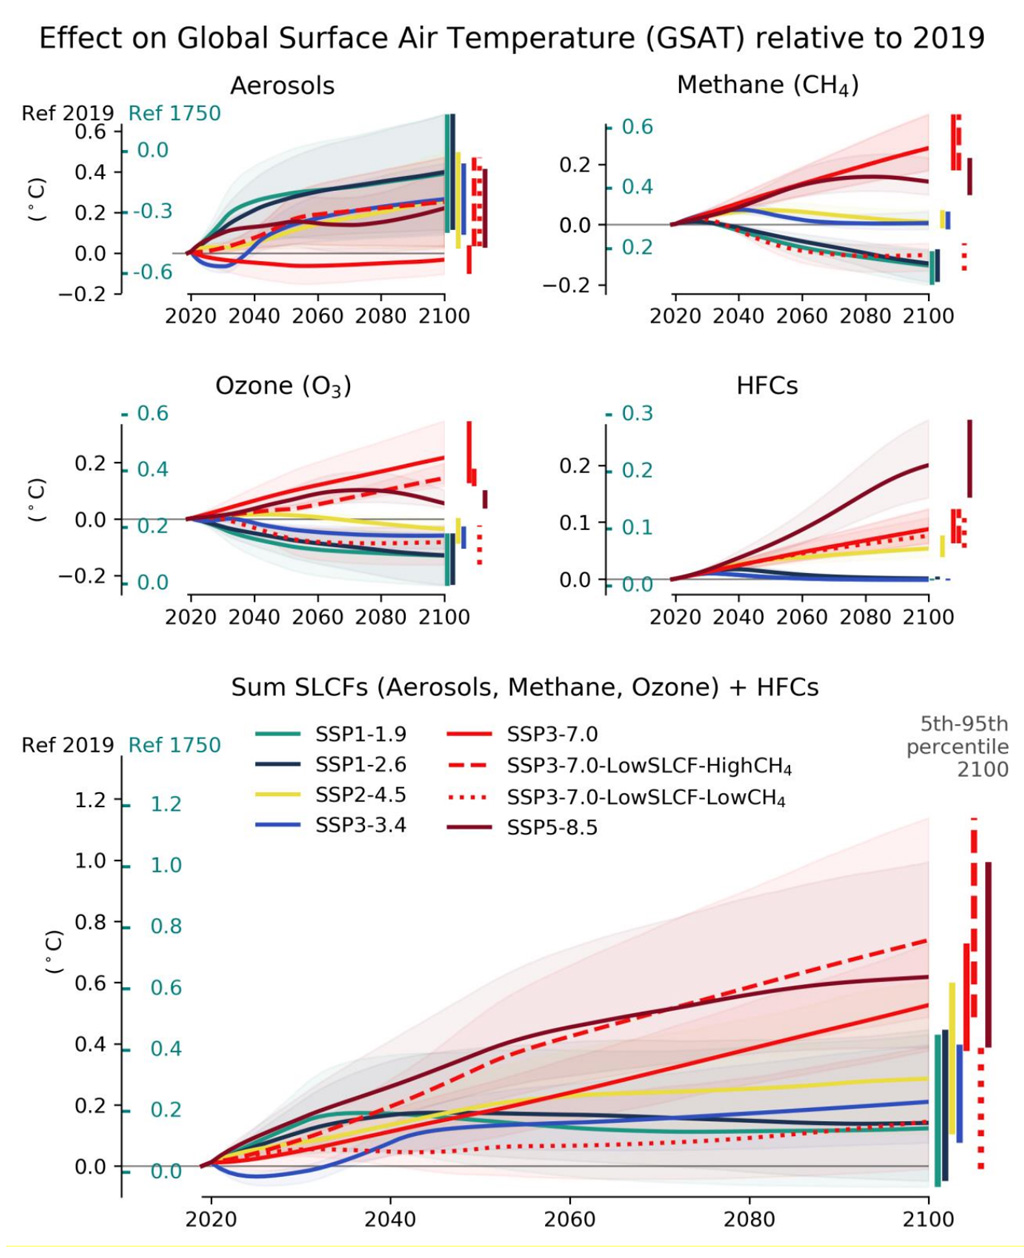 Effects of short-lived climate forcers and hydrofluorocarbons on global surface air temperature IPCC